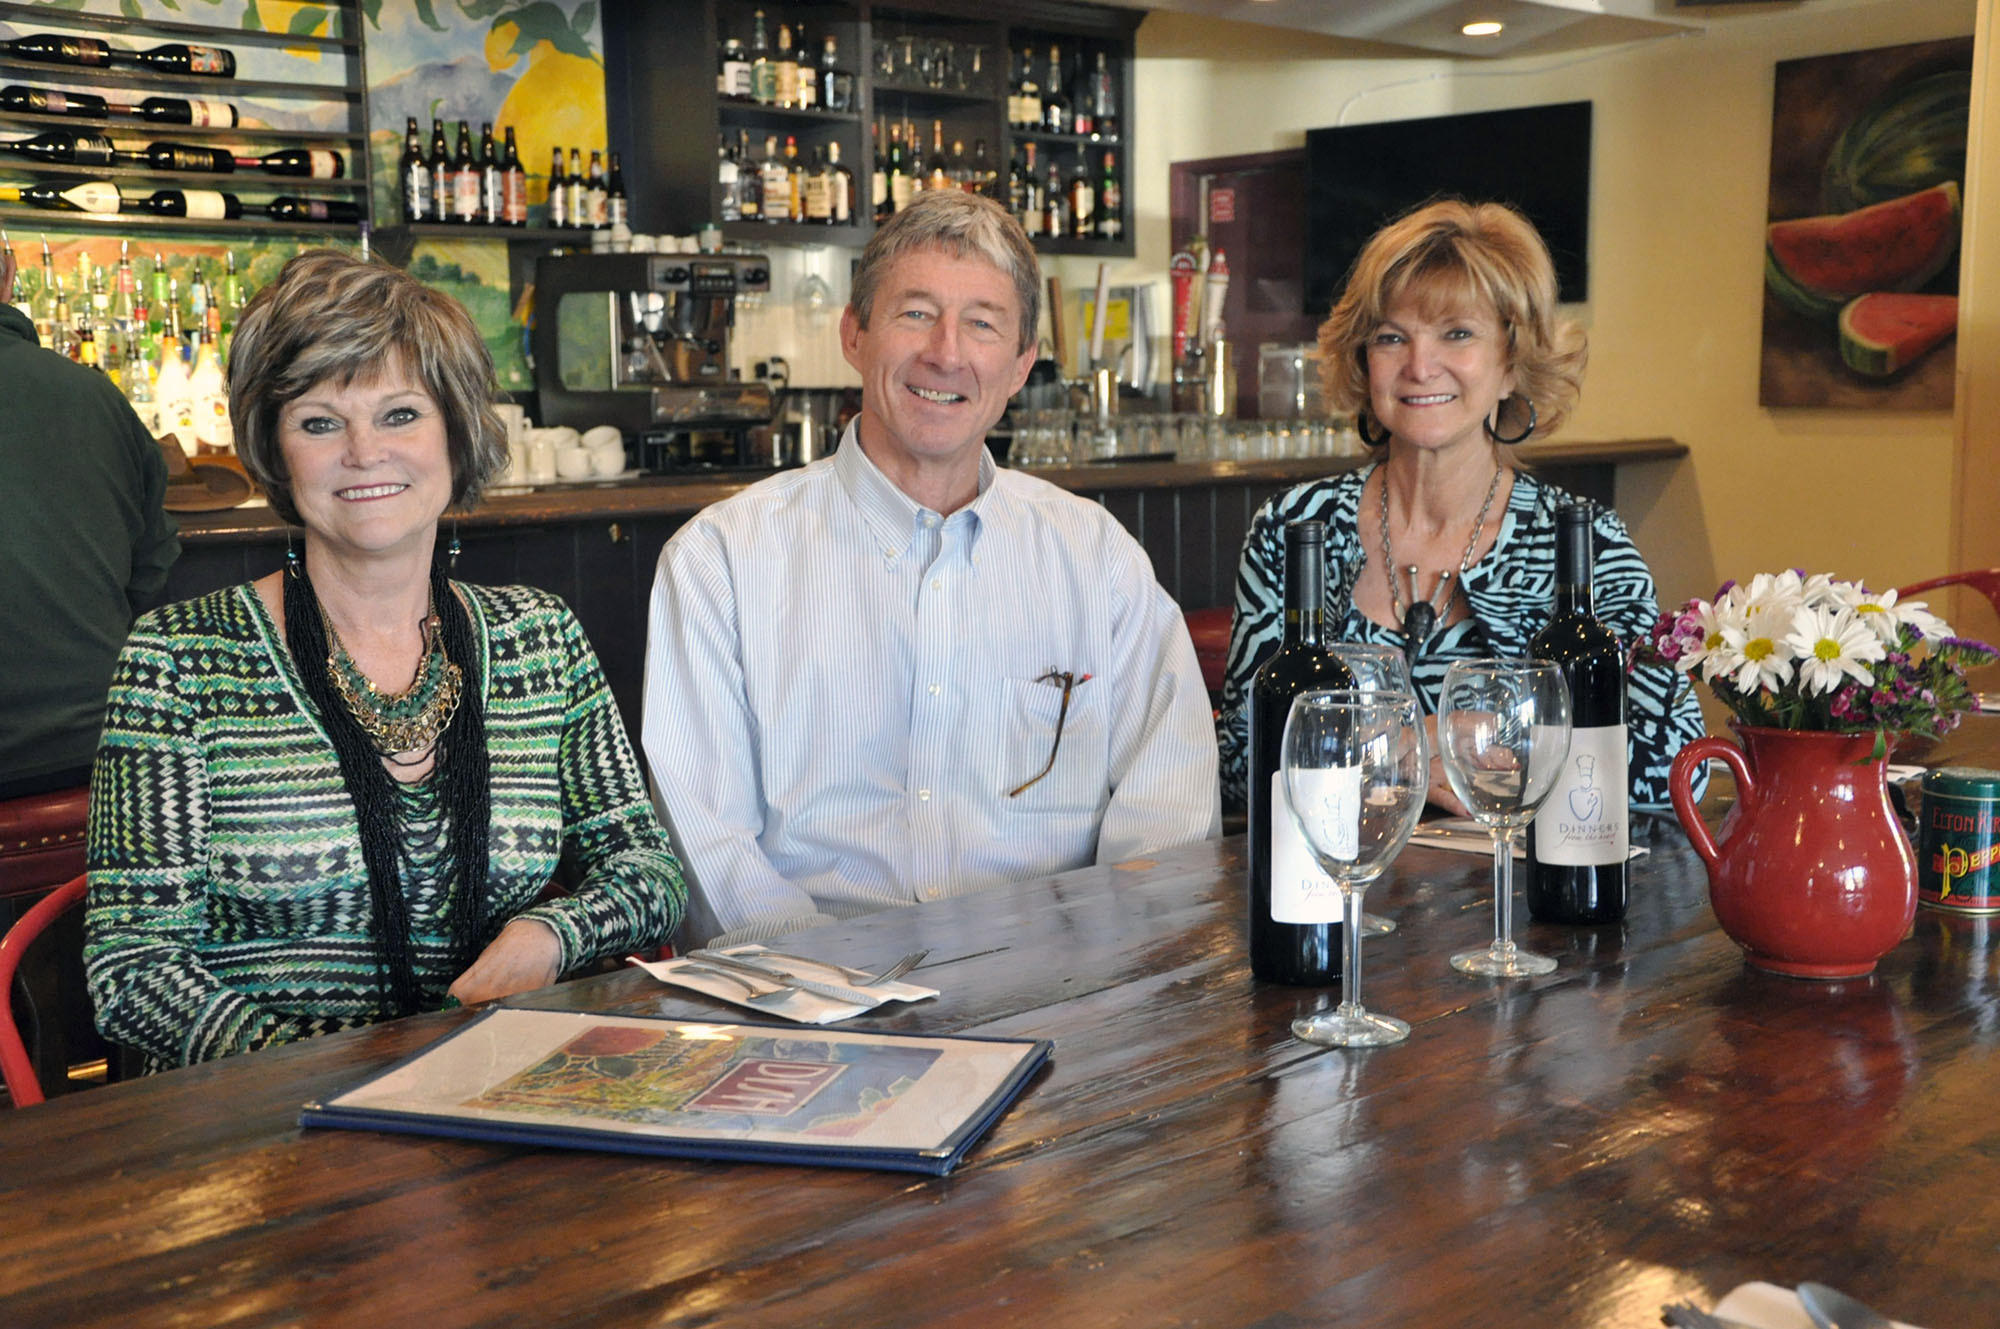 Karen Sellergren, from left, Dish owner Kevin Finch and Sandi Mellin make plans for the upcoming Dinners from the Heart event, an annual fundraiser for Hathaway-Sycamores.